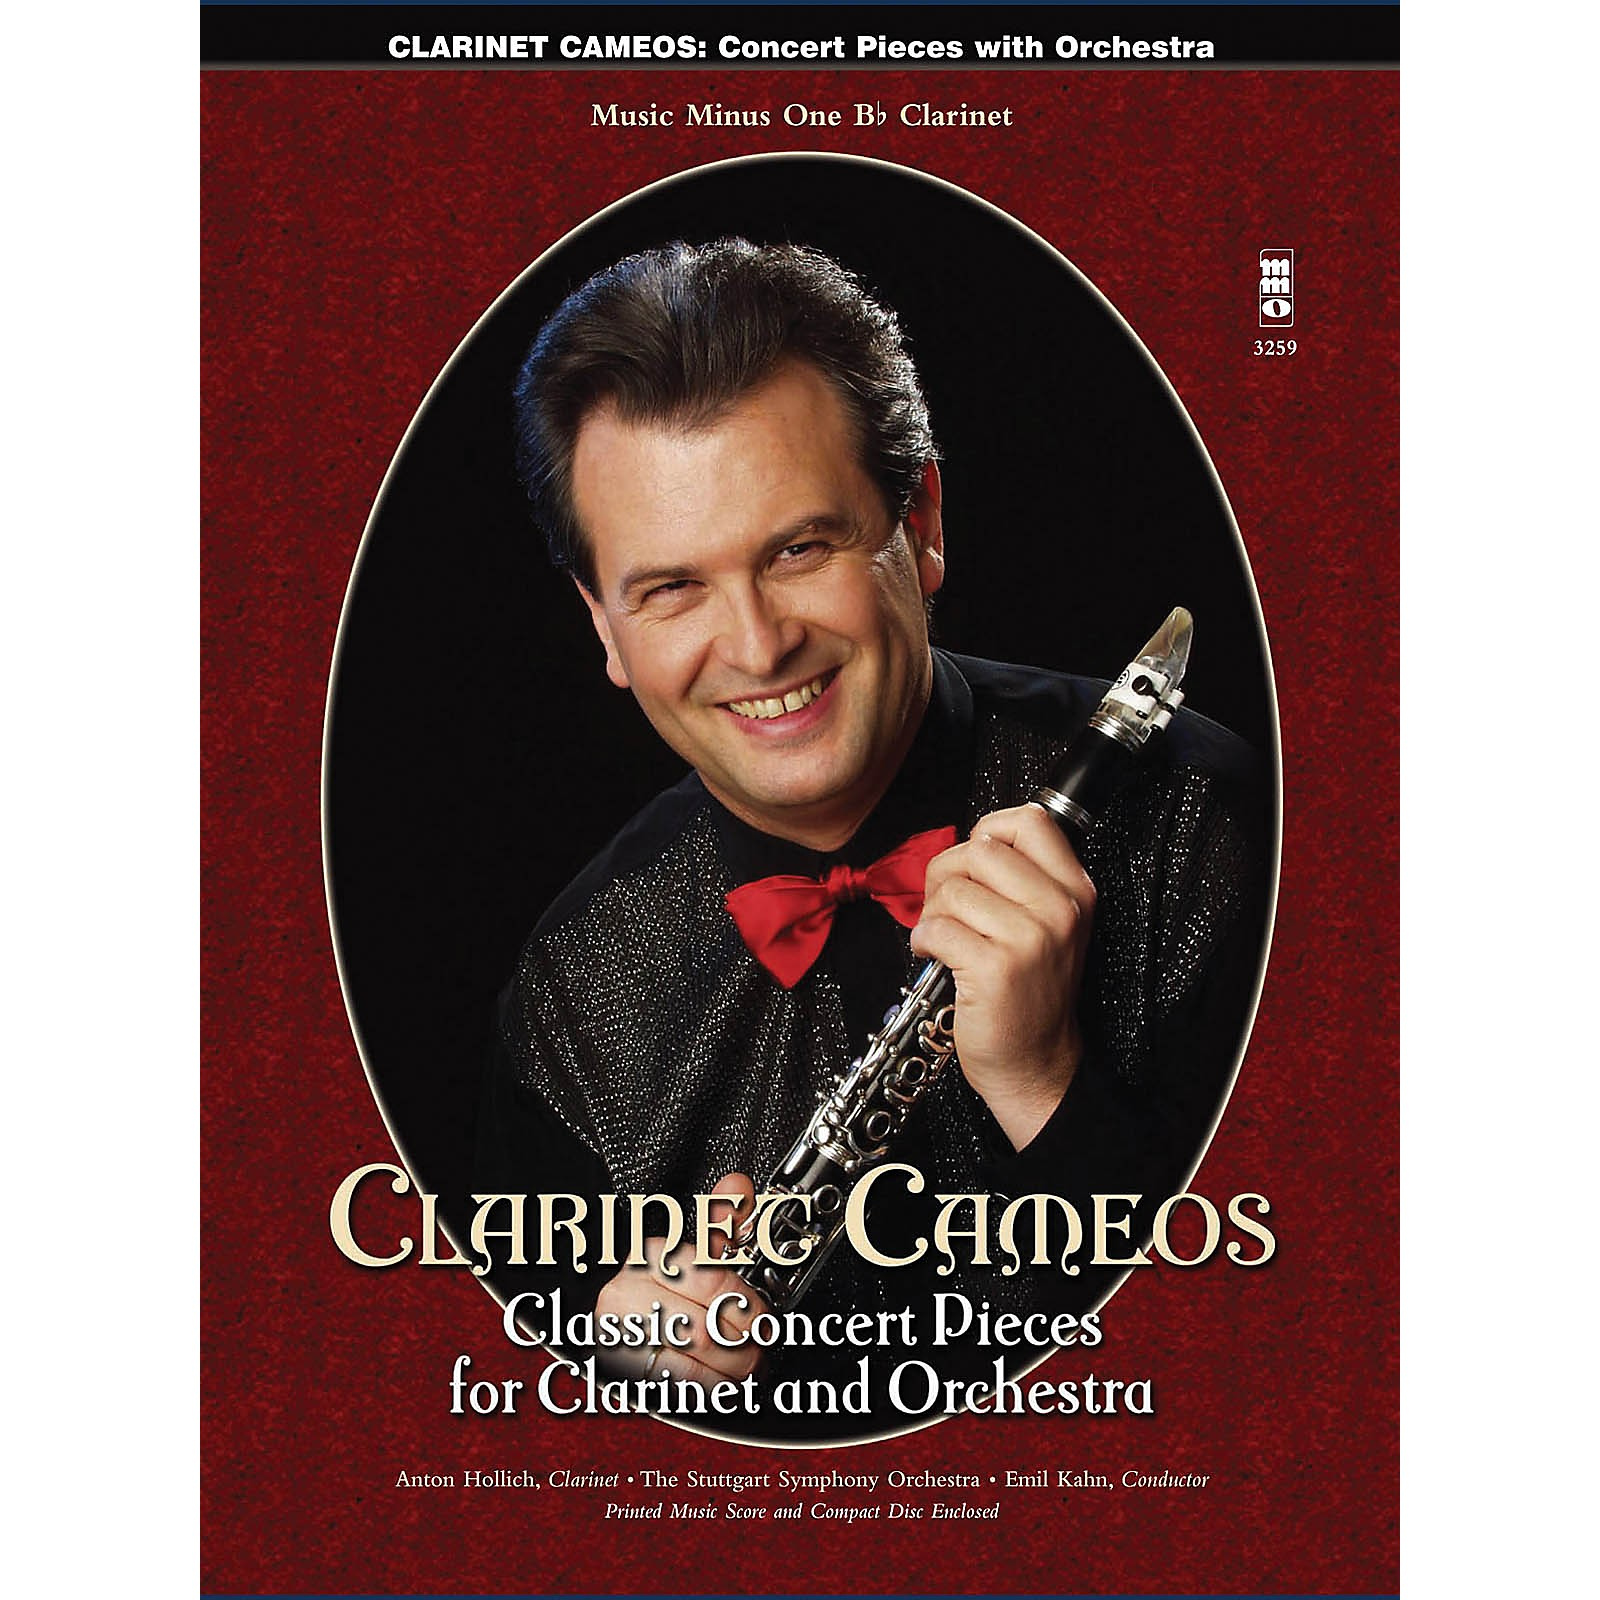 Music Minus One Clarinet Cameos - Classic Concert Pieces for Clarinet and Orchestra Music Minus One BK/CD